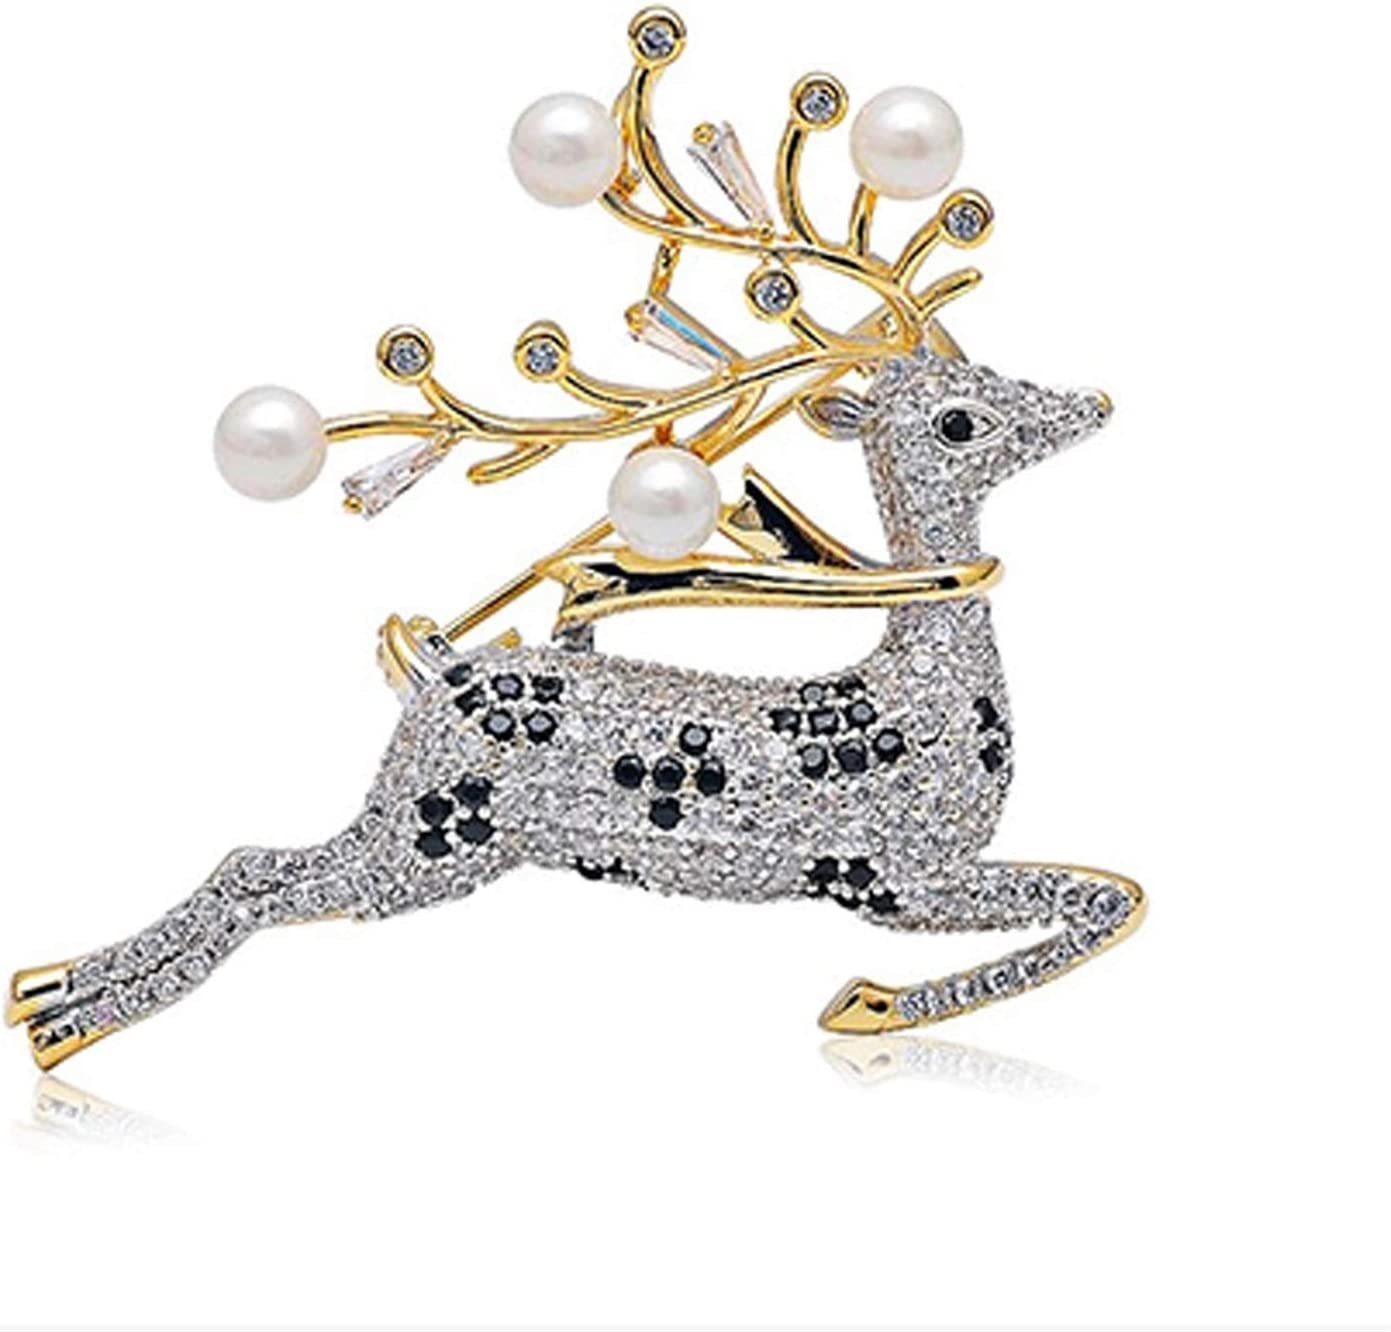 Pins Free shipping on posting reviews Deer Brooches Men Women's Suit Brooch Jacket Seattle Mall wit Alloy